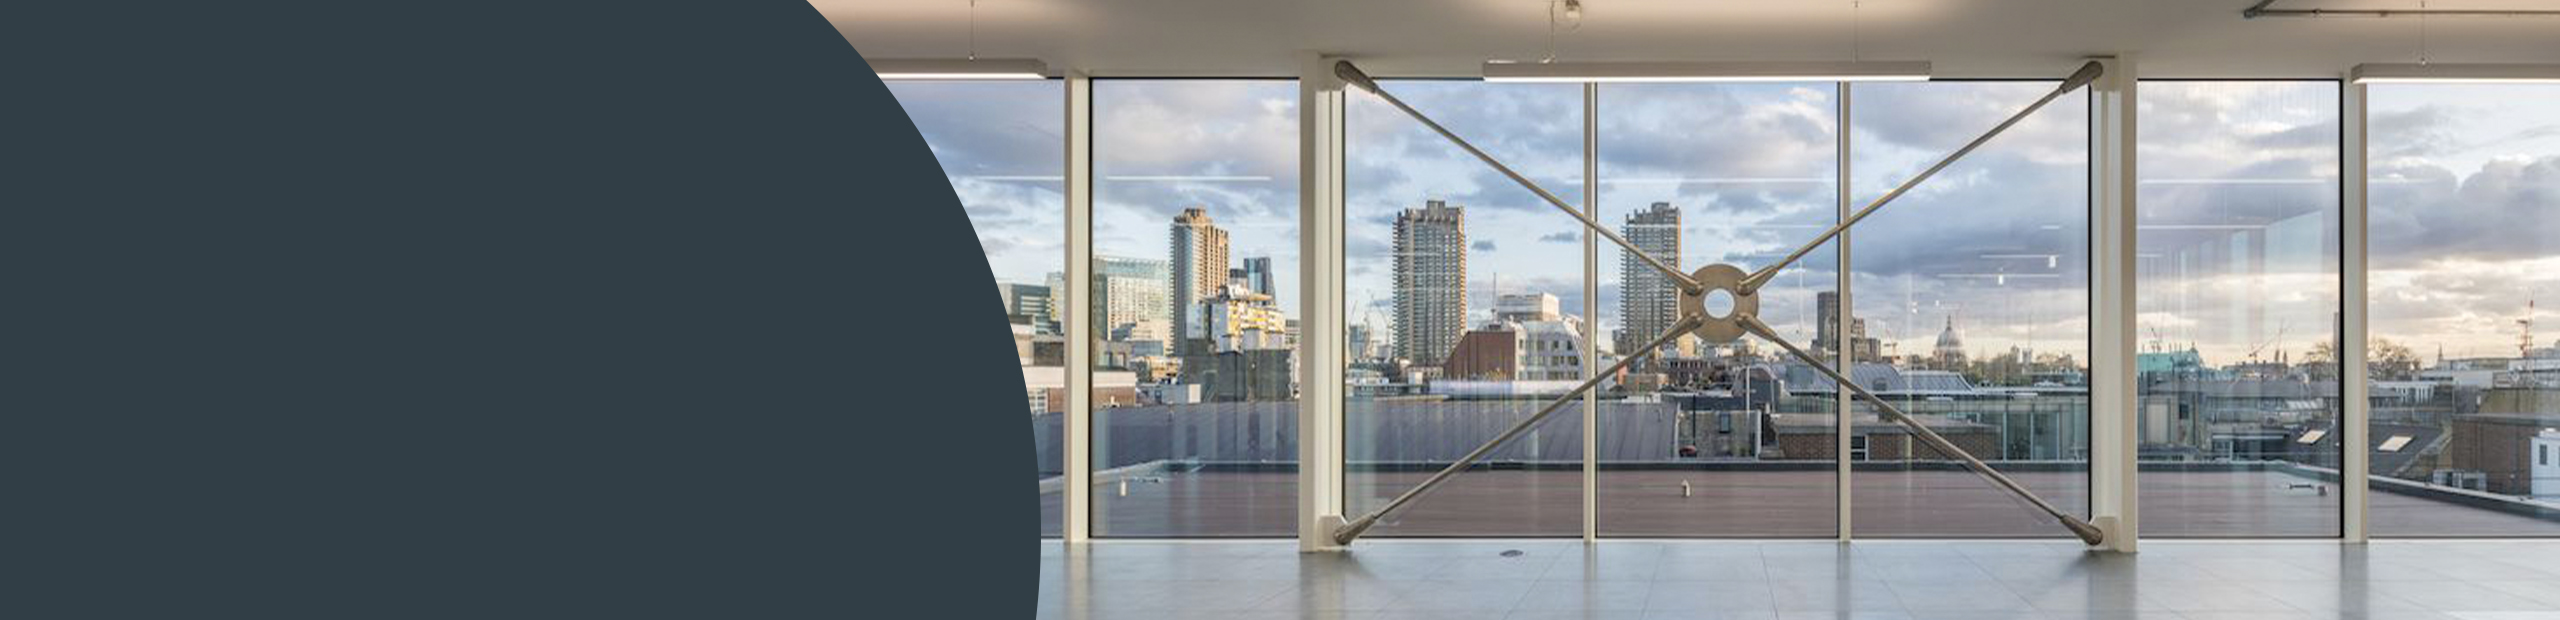 Commercial Cleaning Sutton